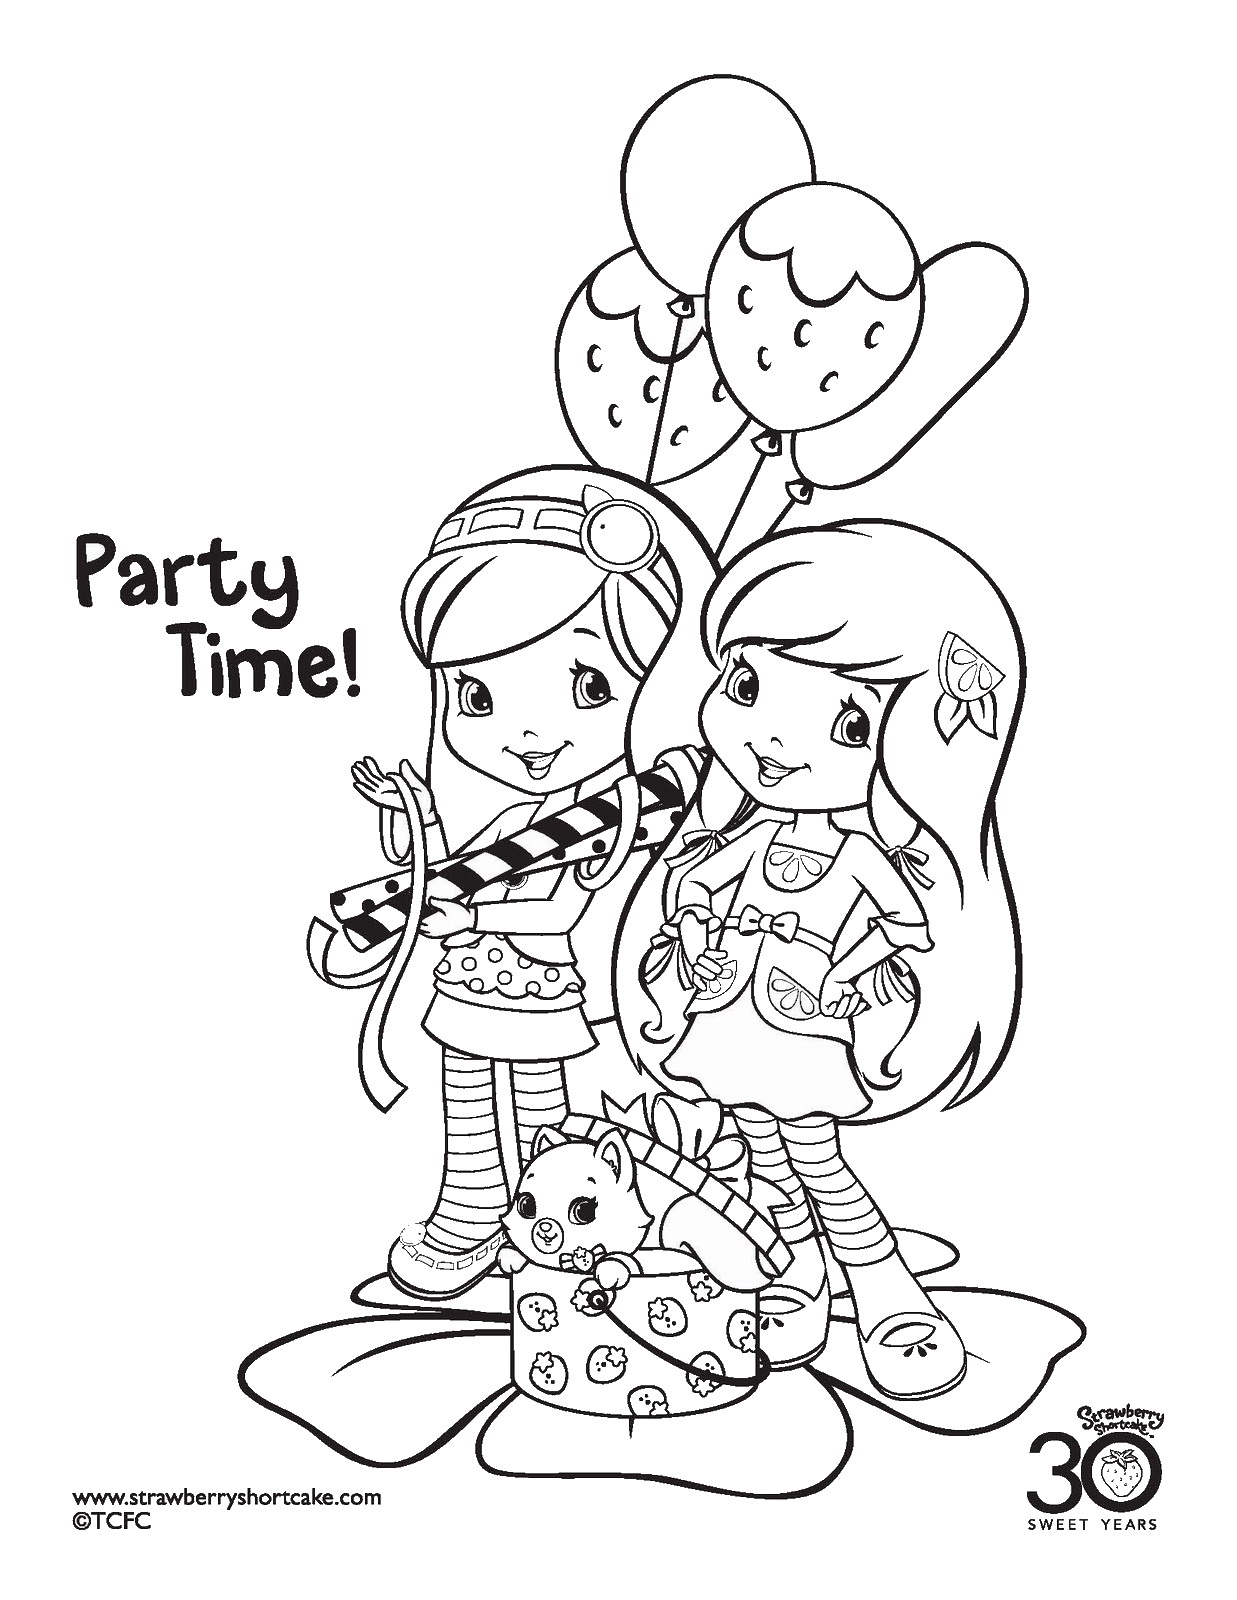 Strawberry shortcake coloring pages birthday printable for Strawberry shortcake birthday coloring pages